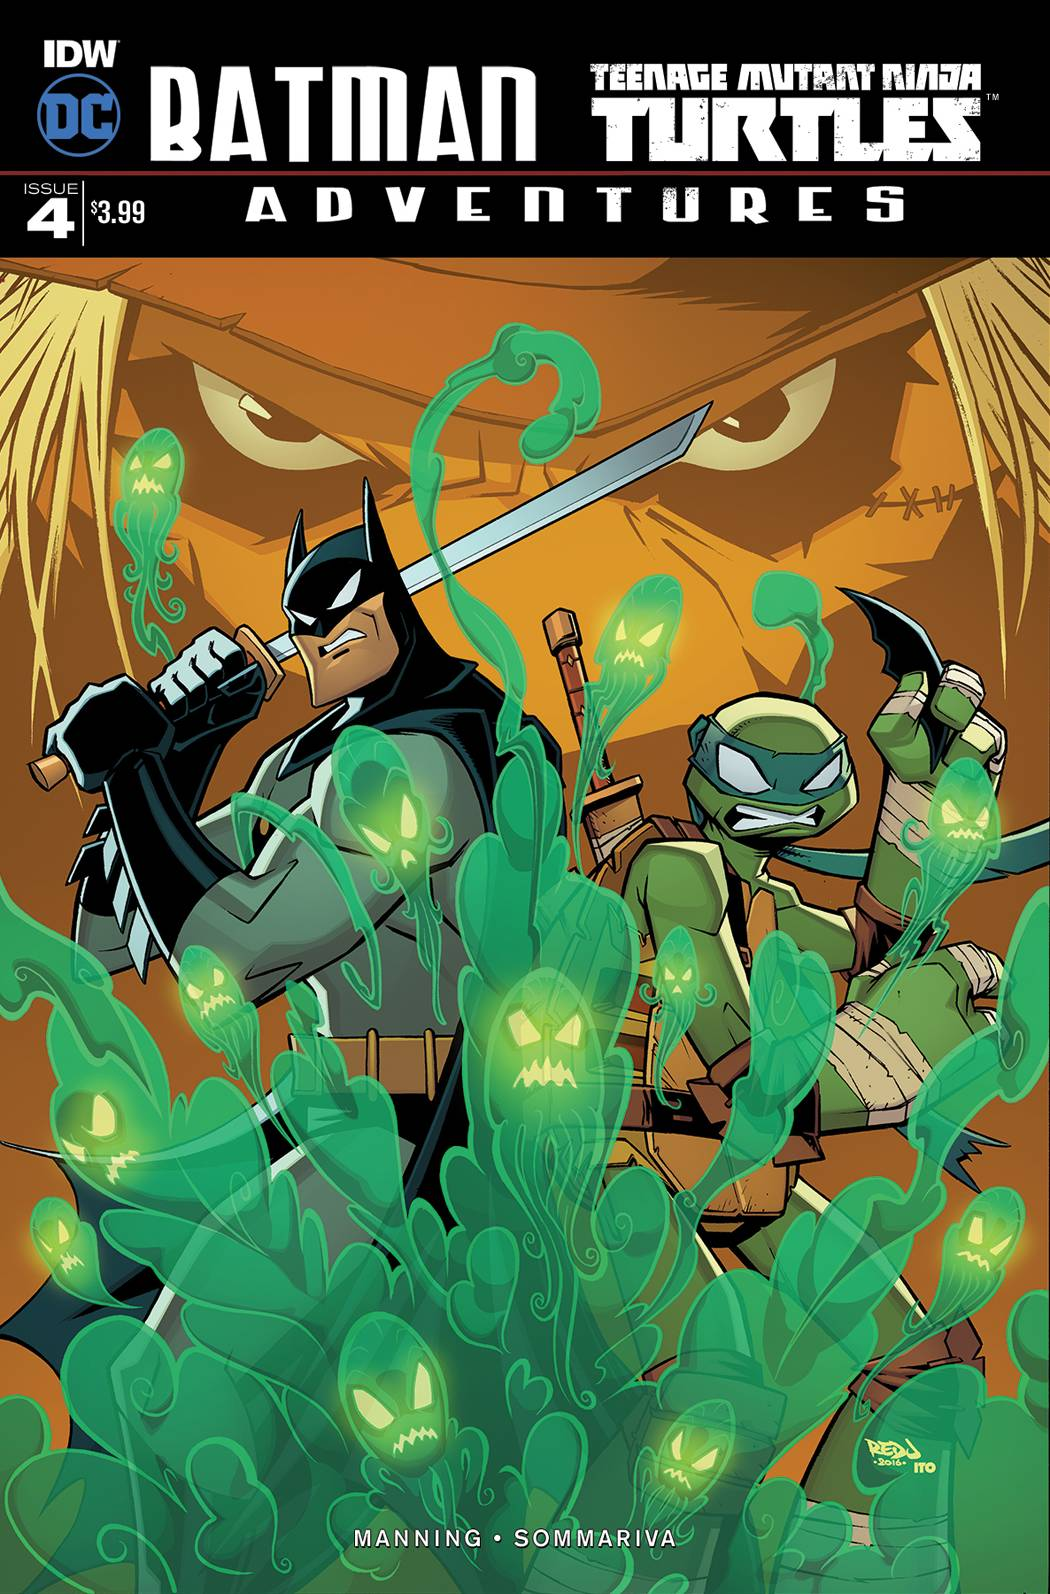 BATMAN TMNT ADVENTURES #4